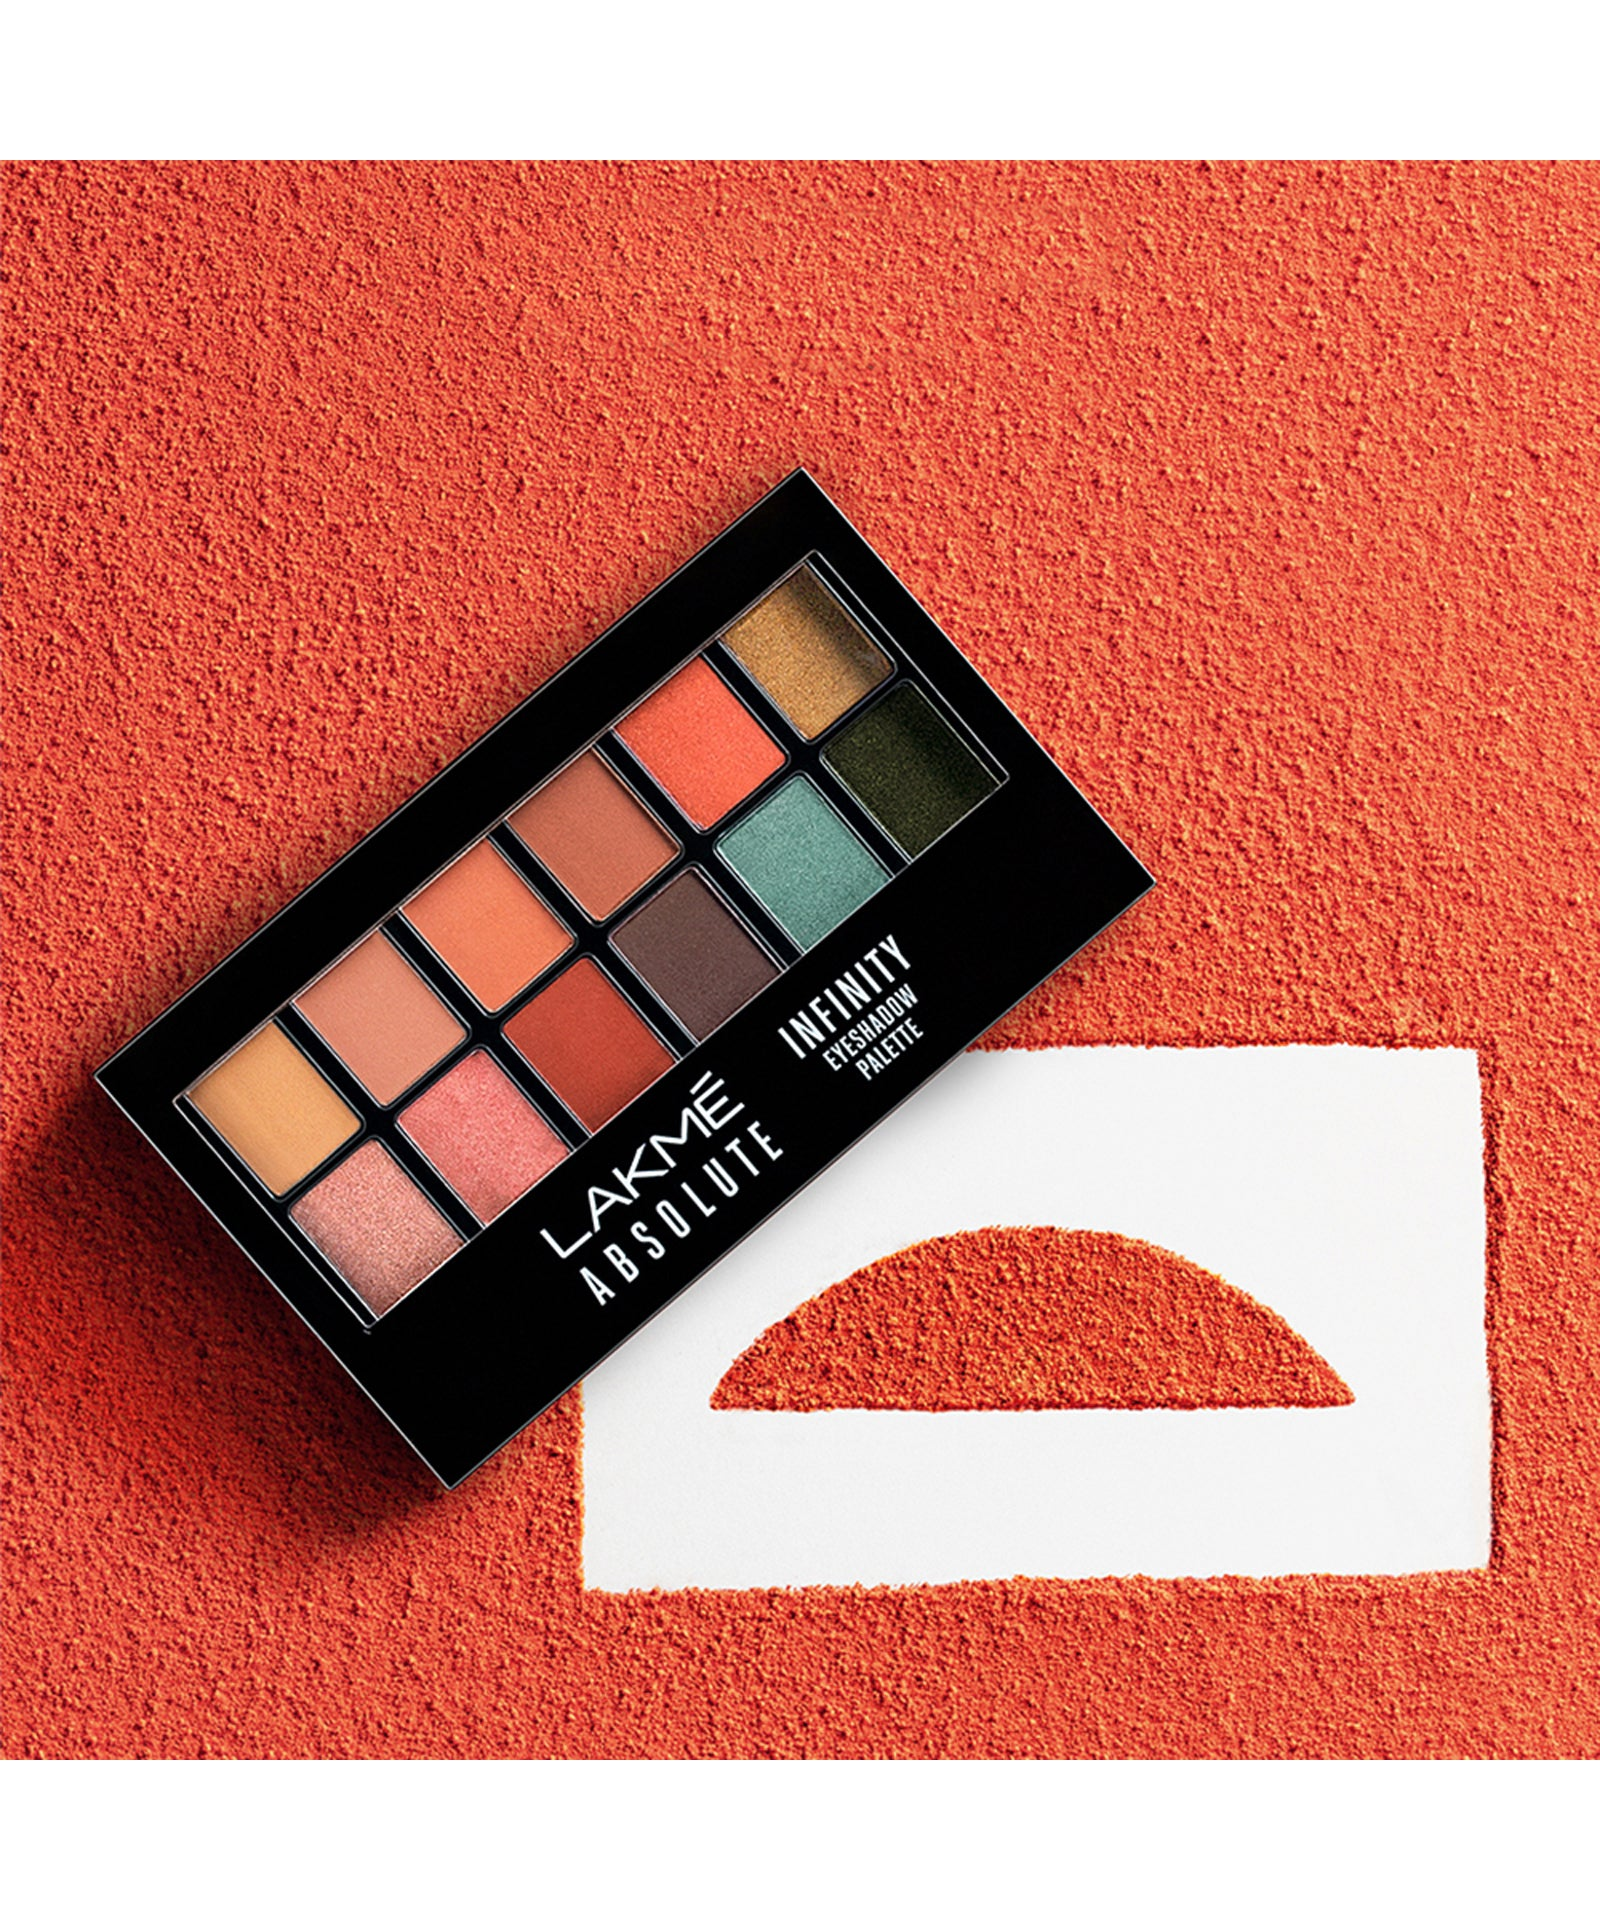 Lakmé Absolute Infinity Eye shadow Pallete - Coral Sunset